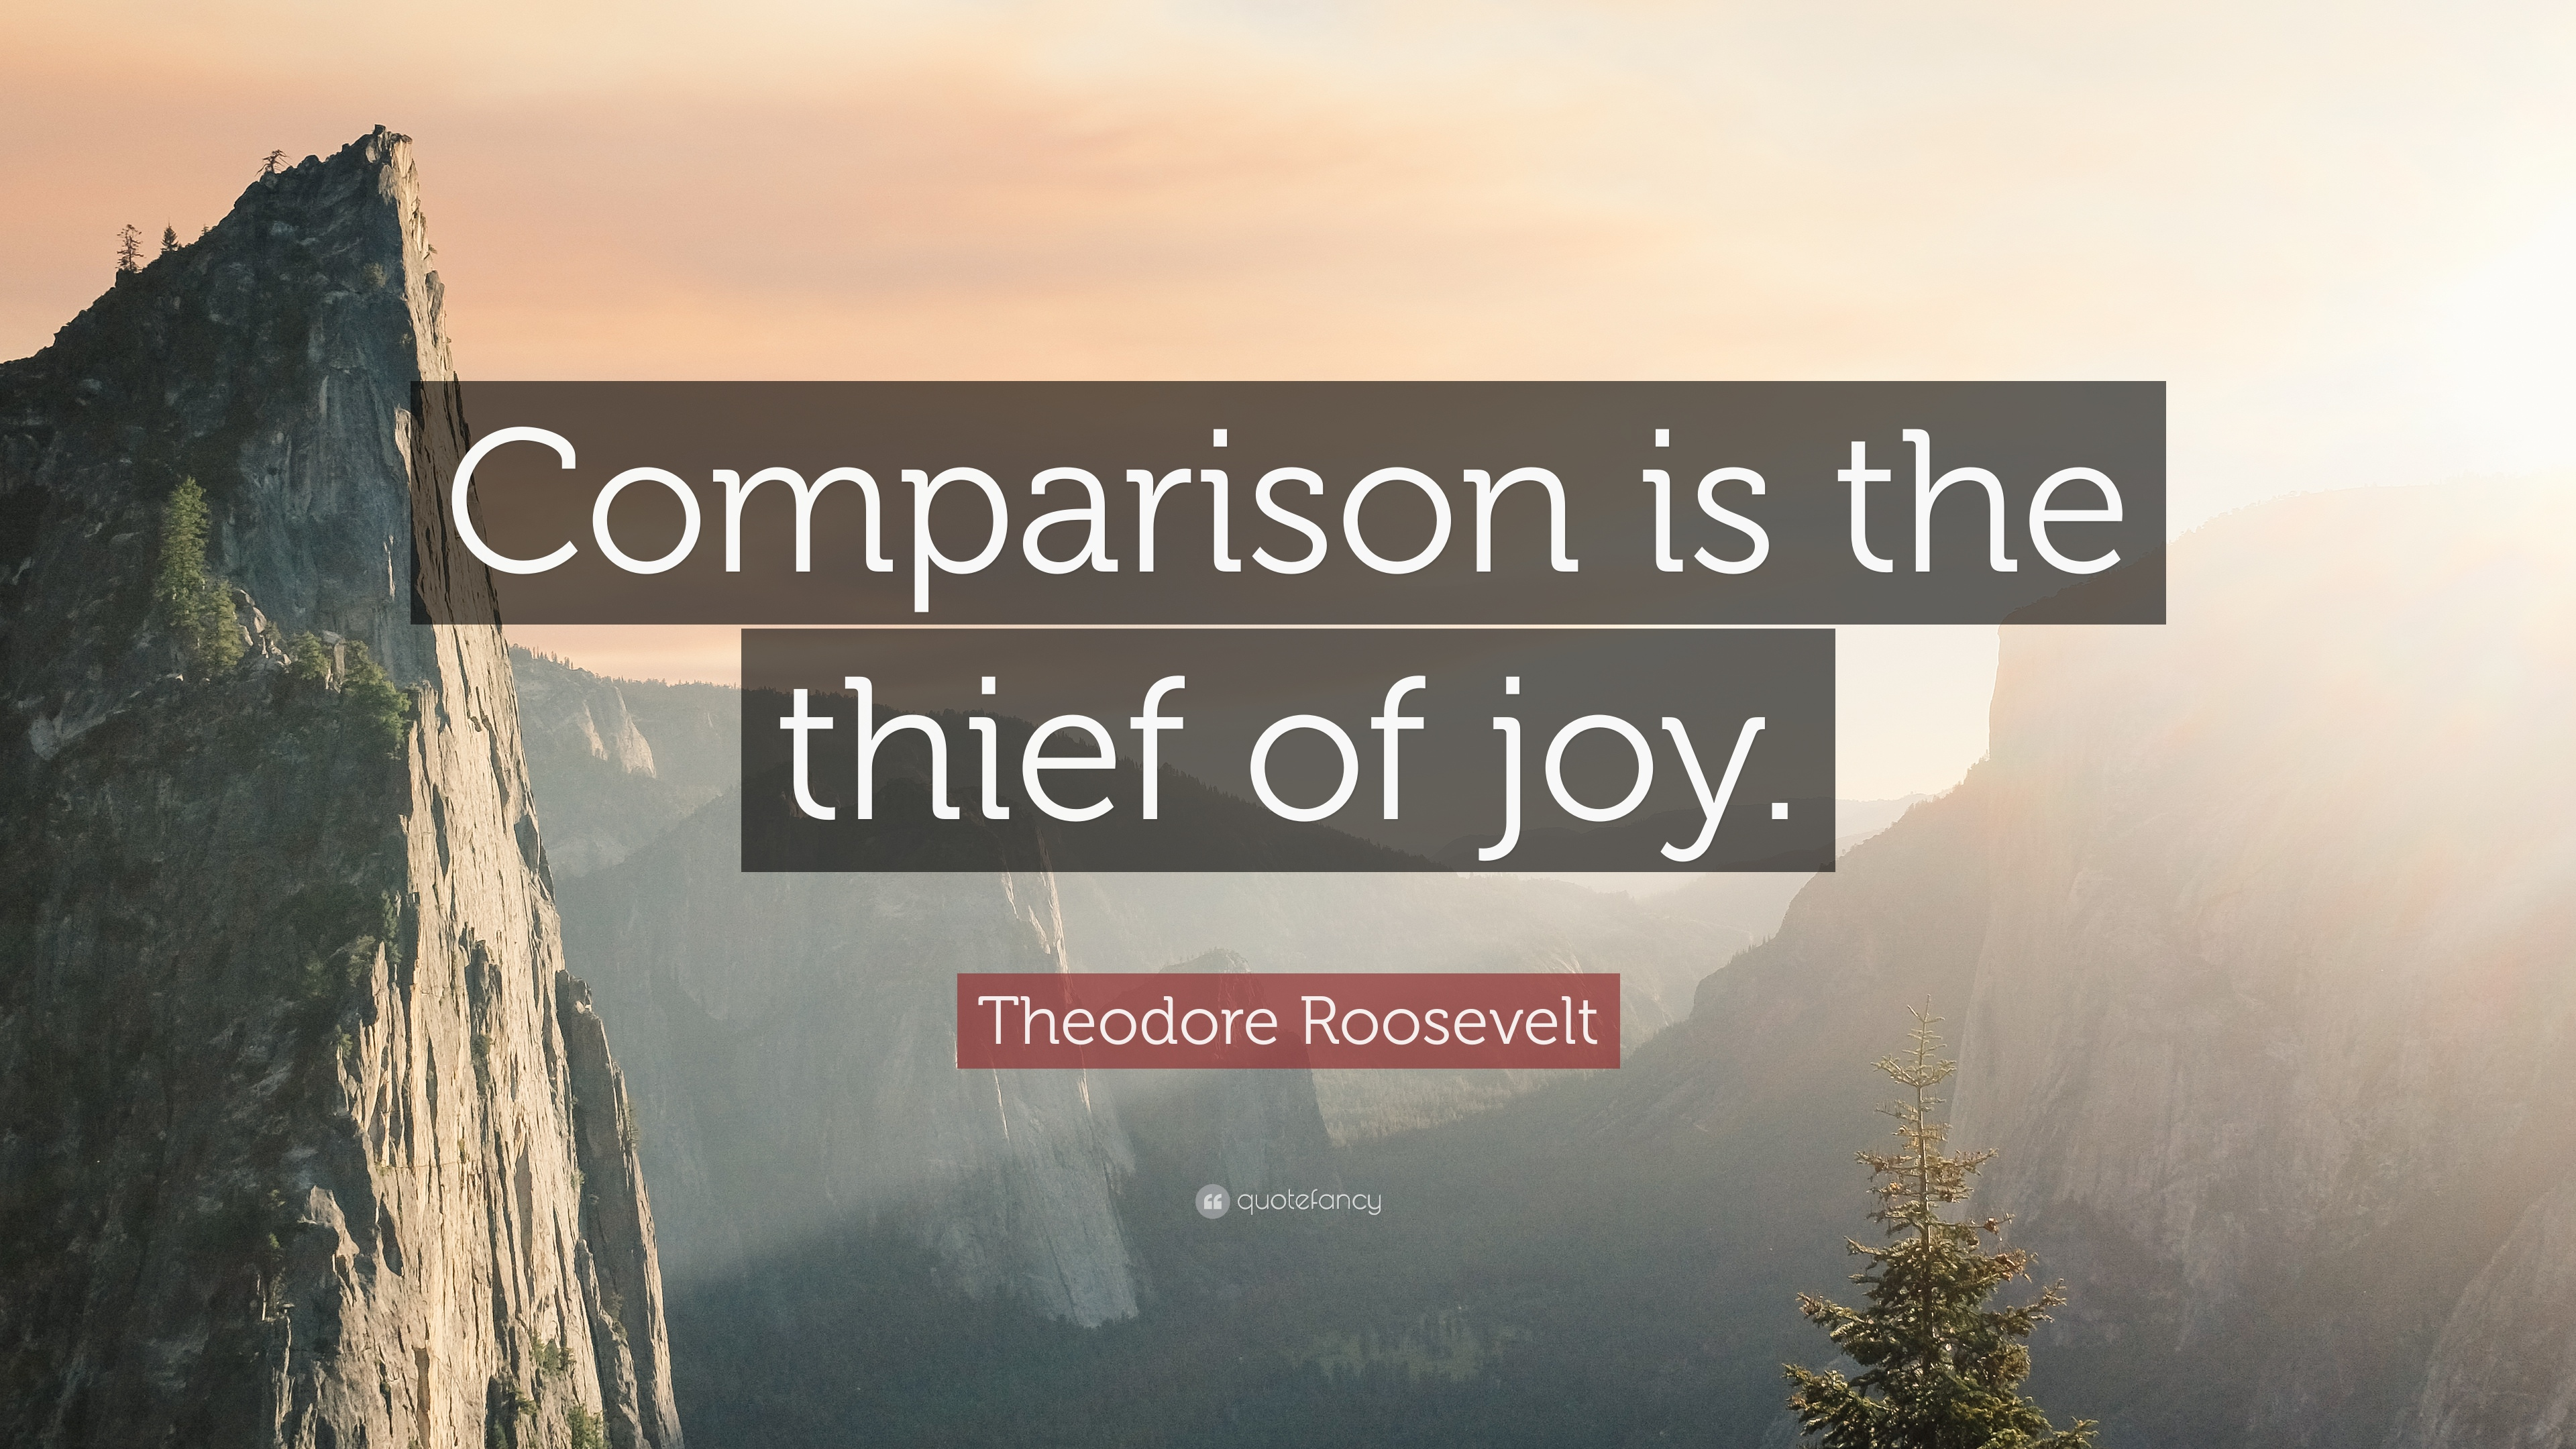 Theodore Roosevelt Wallpaper Quote Theodore Roosevelt Quote Comparison Is The Thief Of Joy